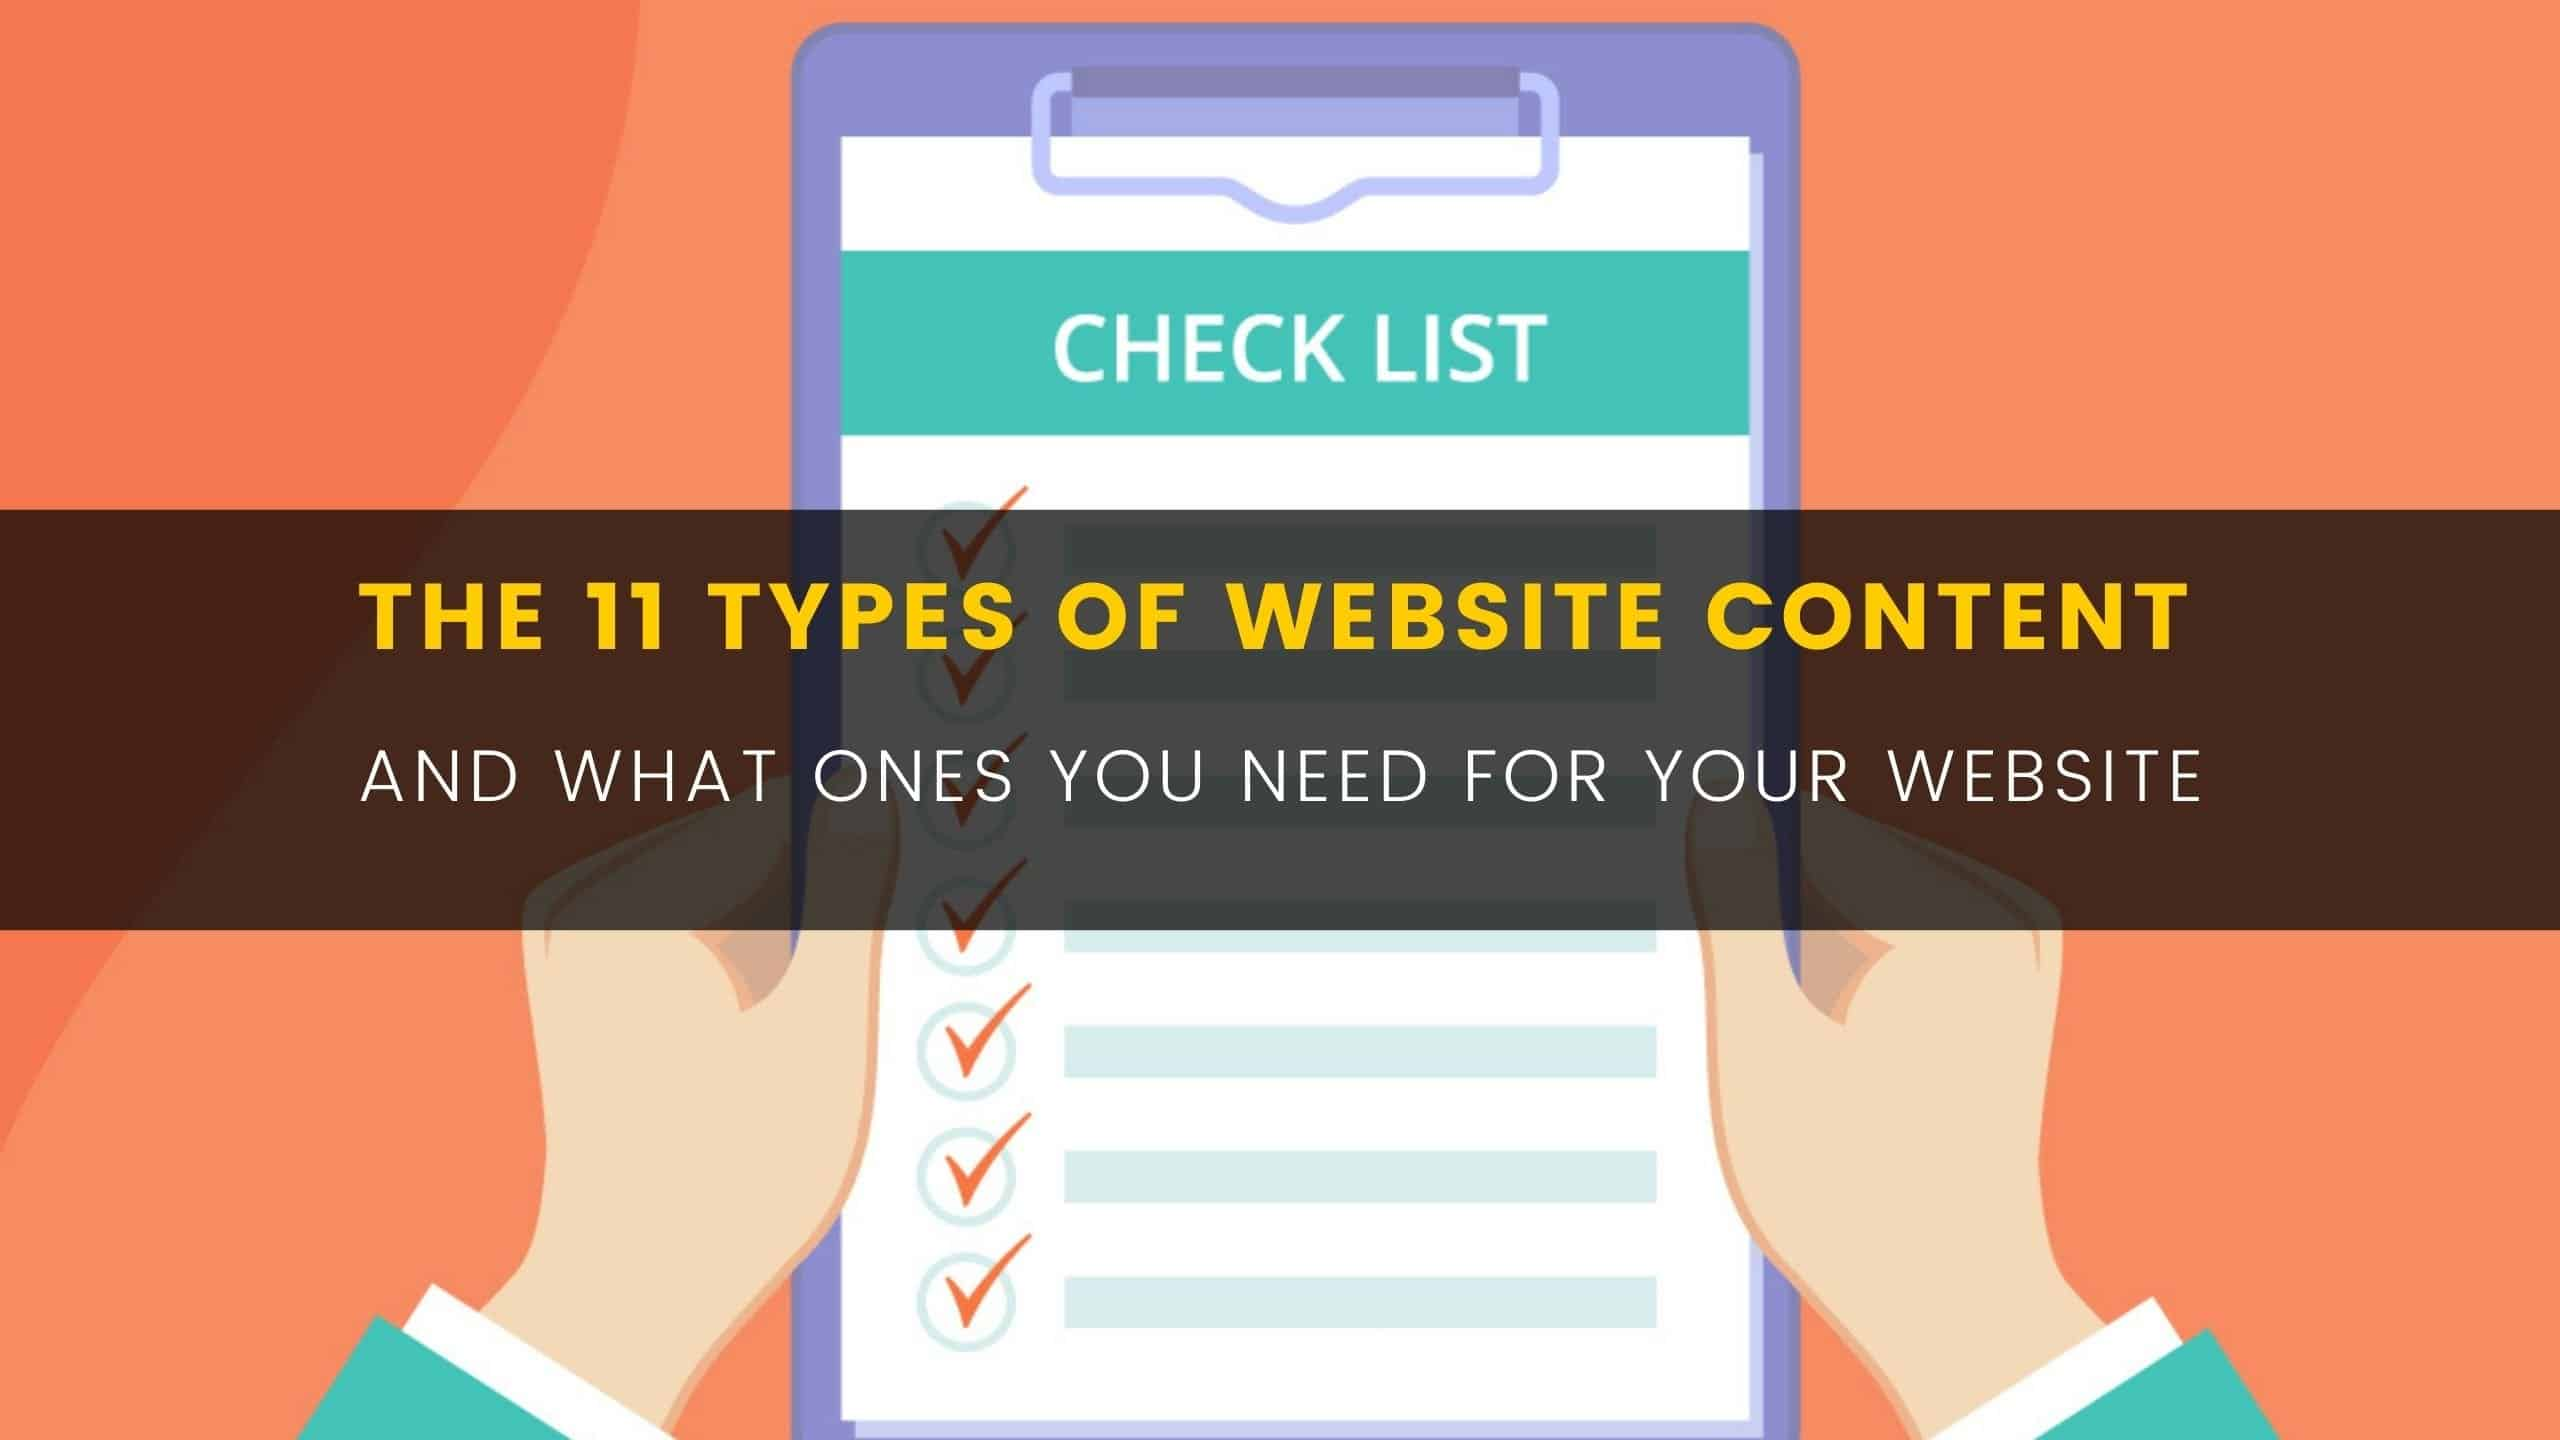 Blog The 11 types of website content And WHAT ONES YOU NEED FOR YOUR WEBSITE